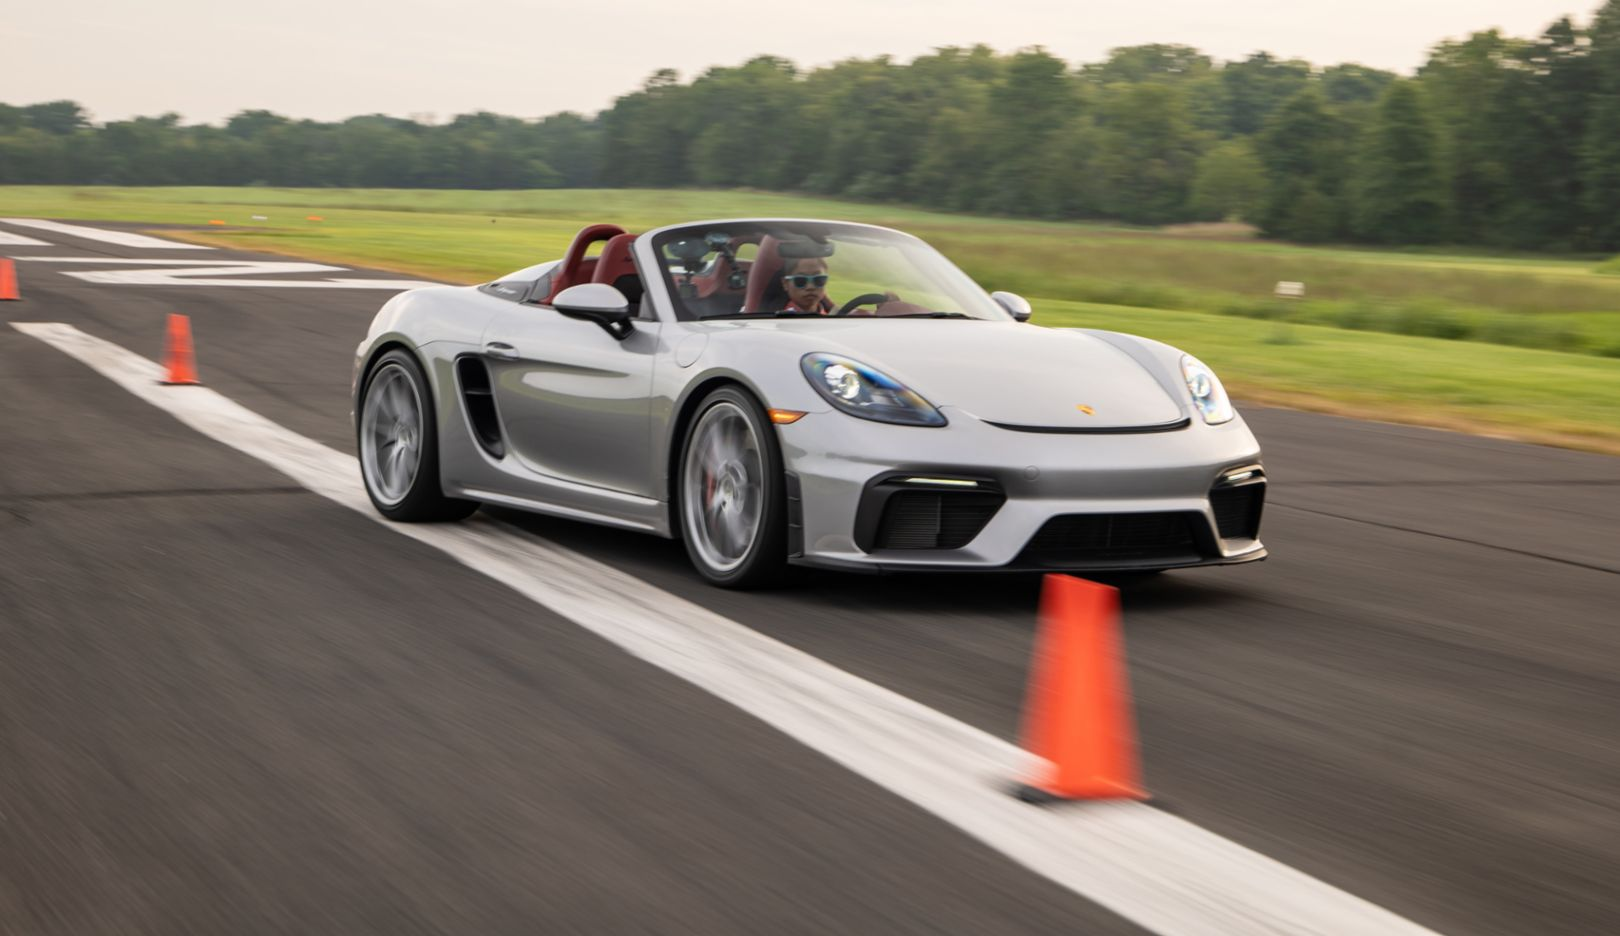 New Guinness World Records™ Title Achievement for Fastest Vehicle Slalom